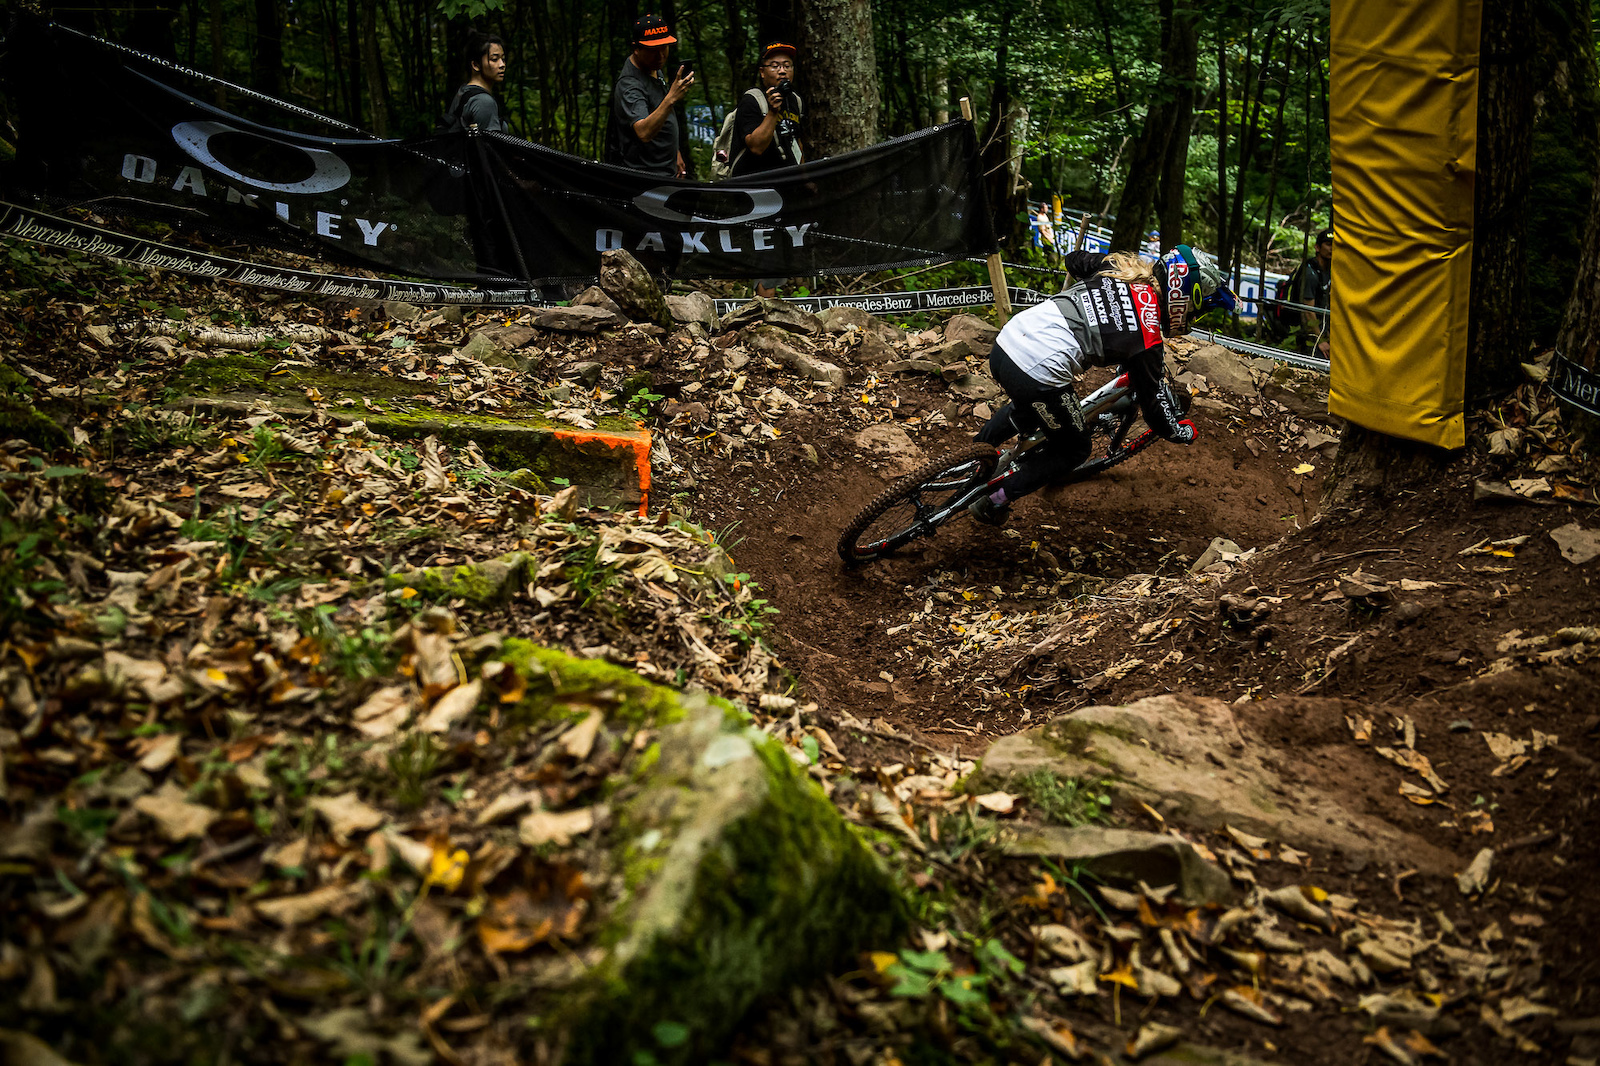 Vali Holl out for a rip during the timed training session.